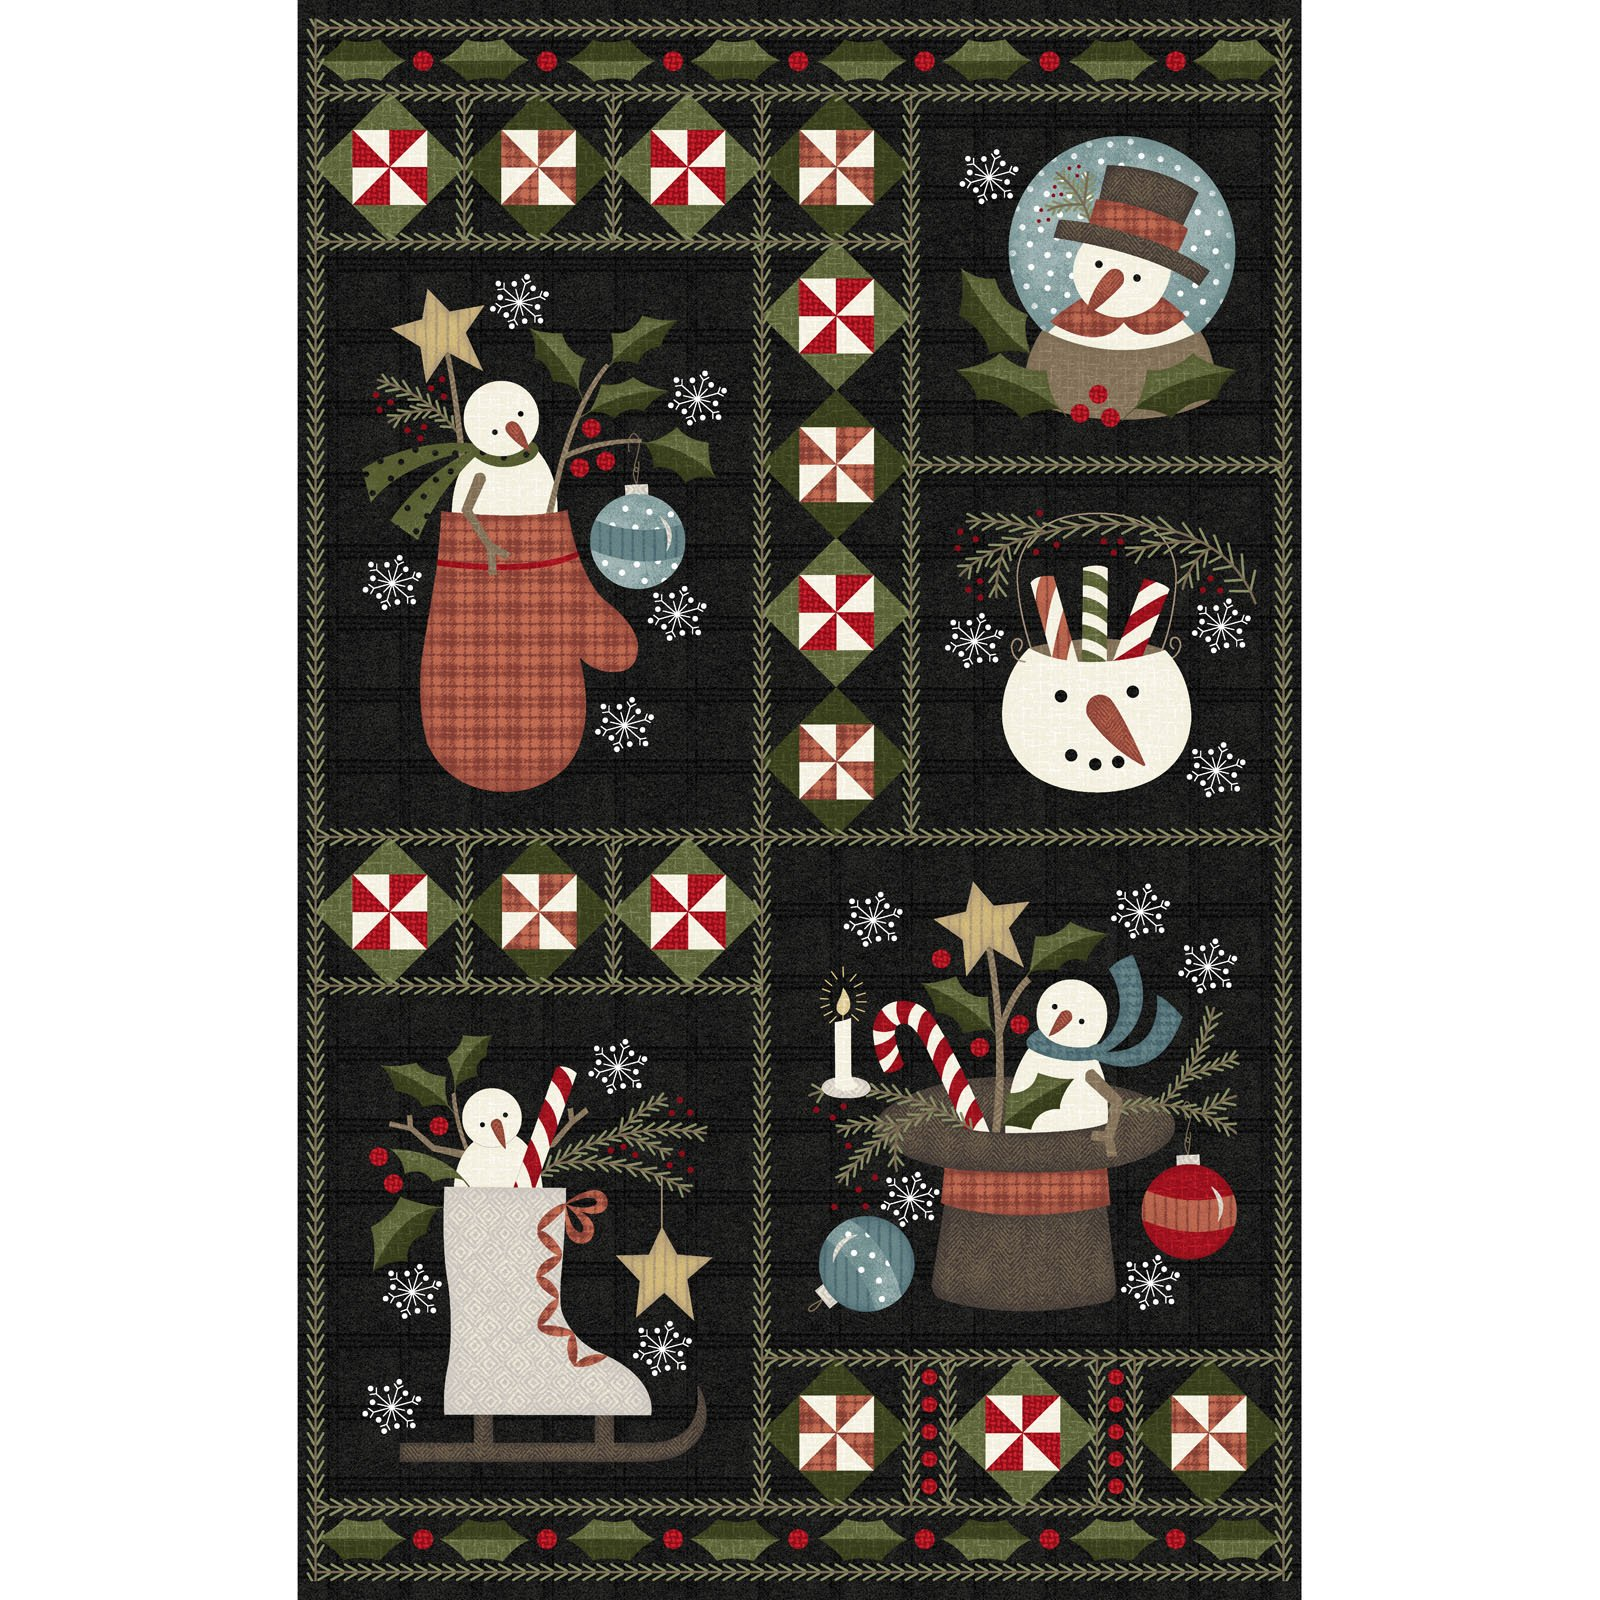 EESC-F9931 JK - SNOWDAYS FLANNEL BY BONNIE SULLIVAN PANEL 27 CHARCOAL - ARRIVING IN AUGUST 2021